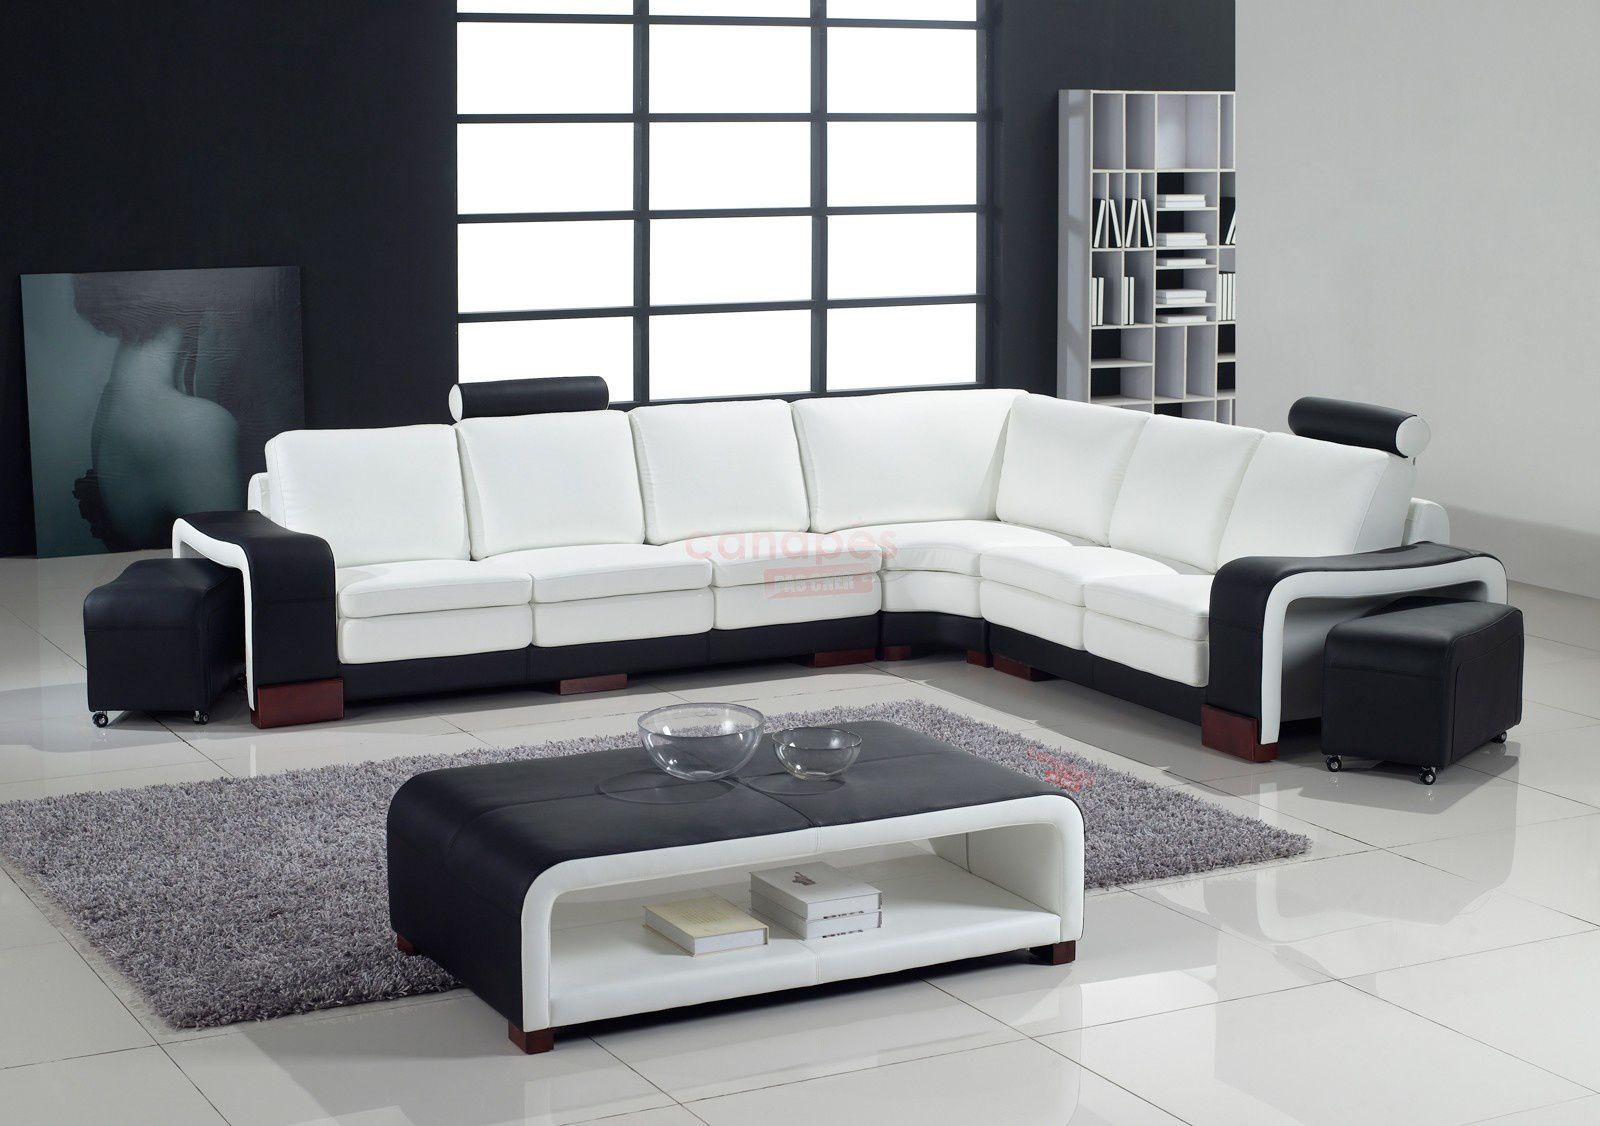 id es de design pour un salon d 39 angle. Black Bedroom Furniture Sets. Home Design Ideas